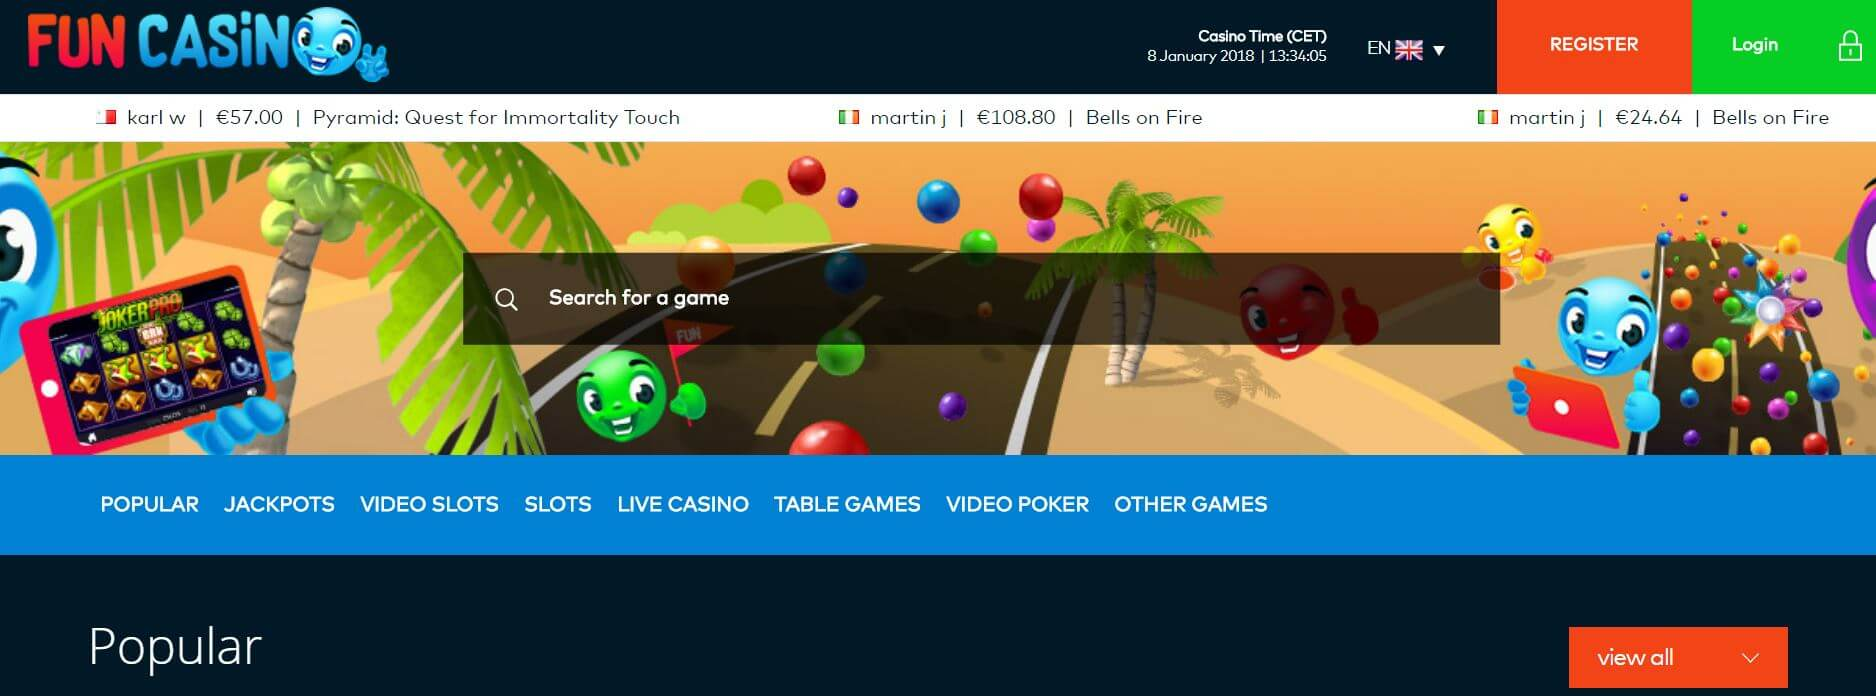 An image of the Fun Casino Home Page